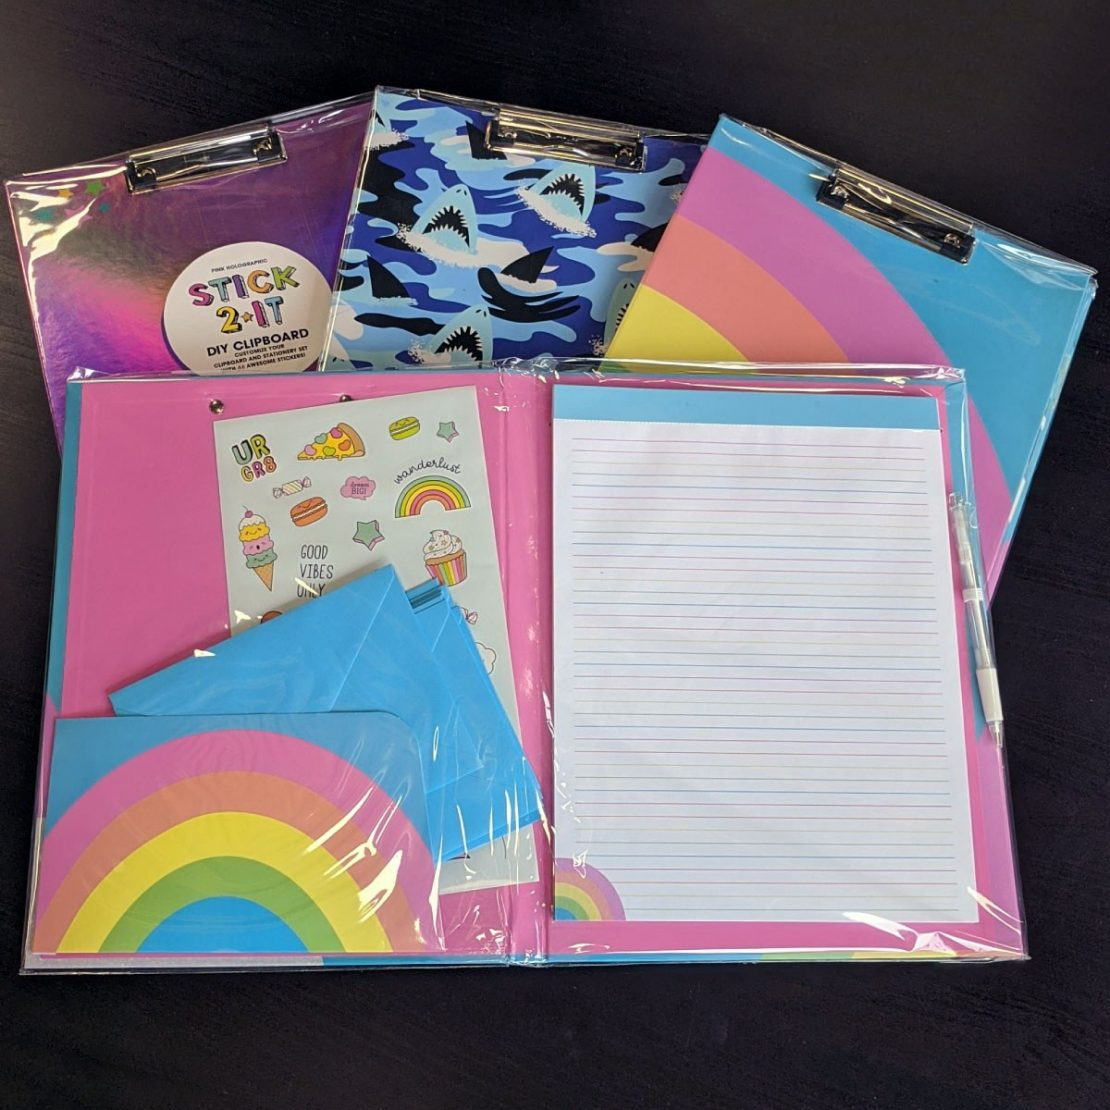 Clipboards with stickers and paper